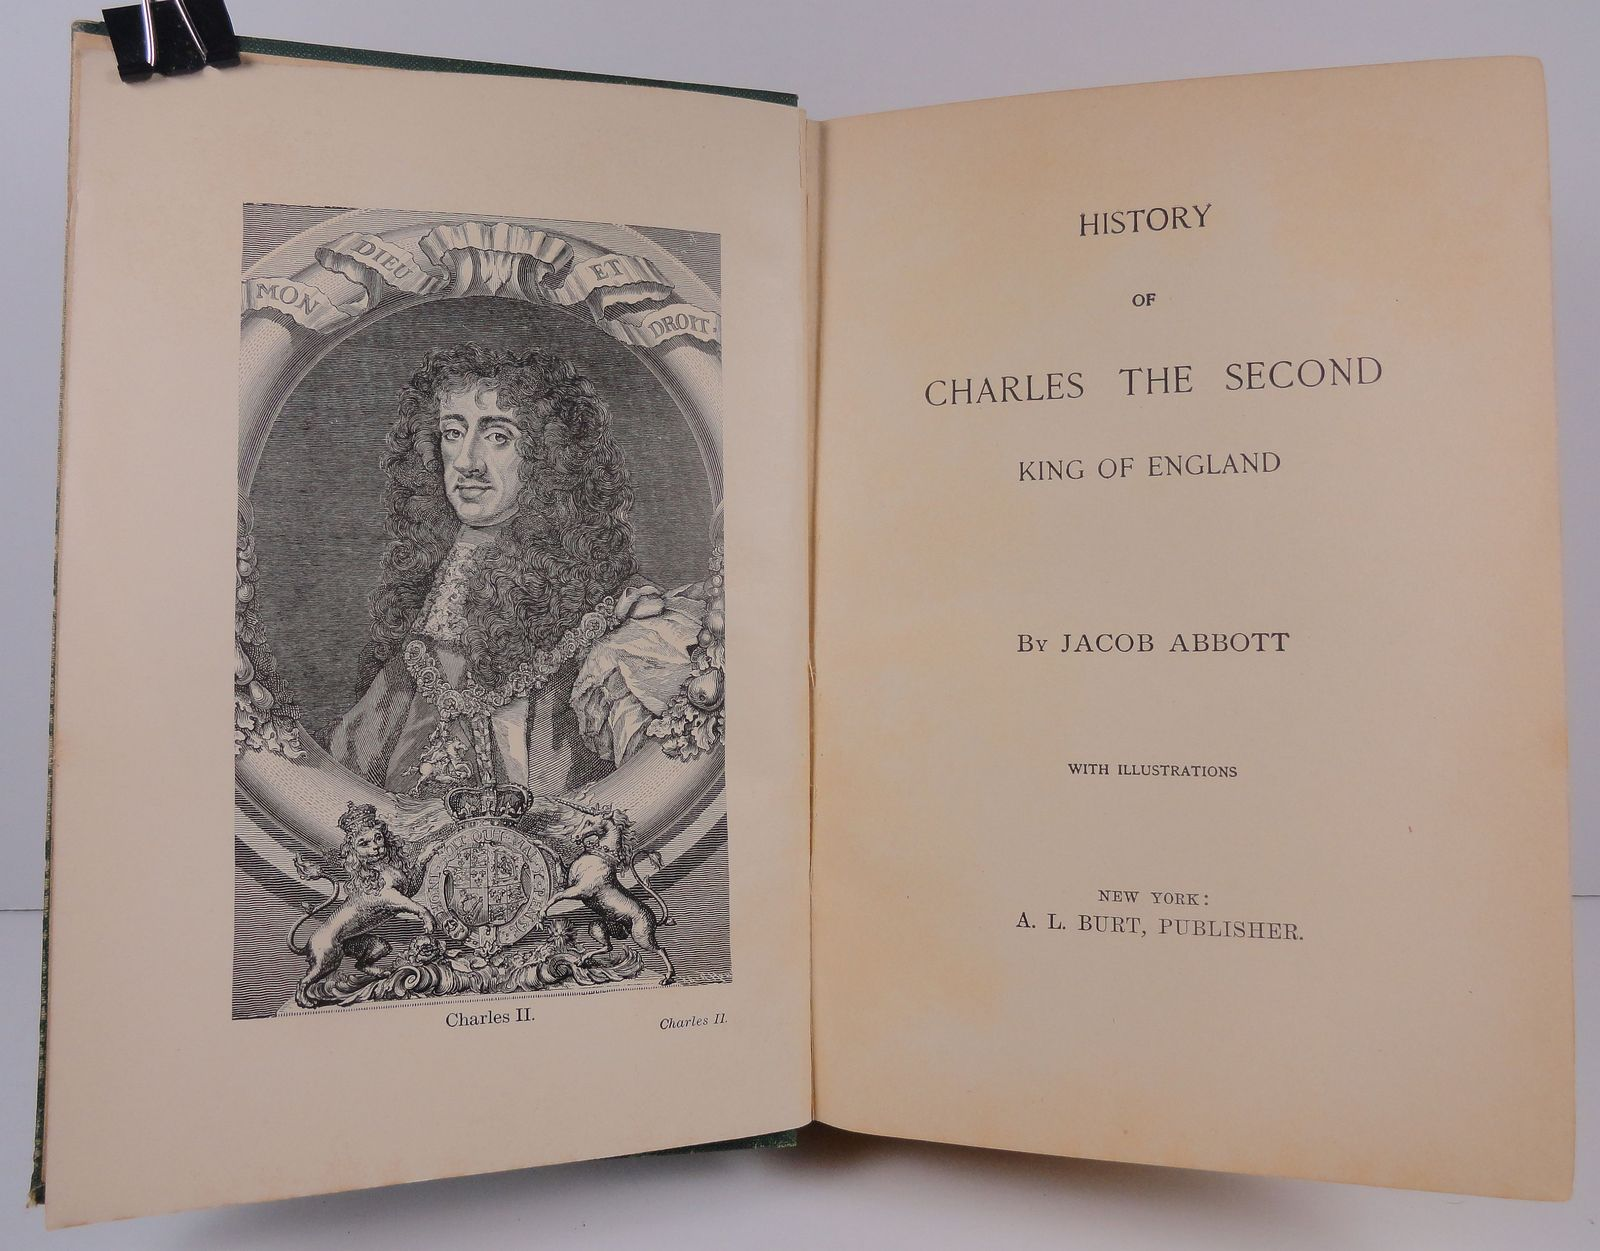 History of Charles the Second King of England by Jacob Abbot